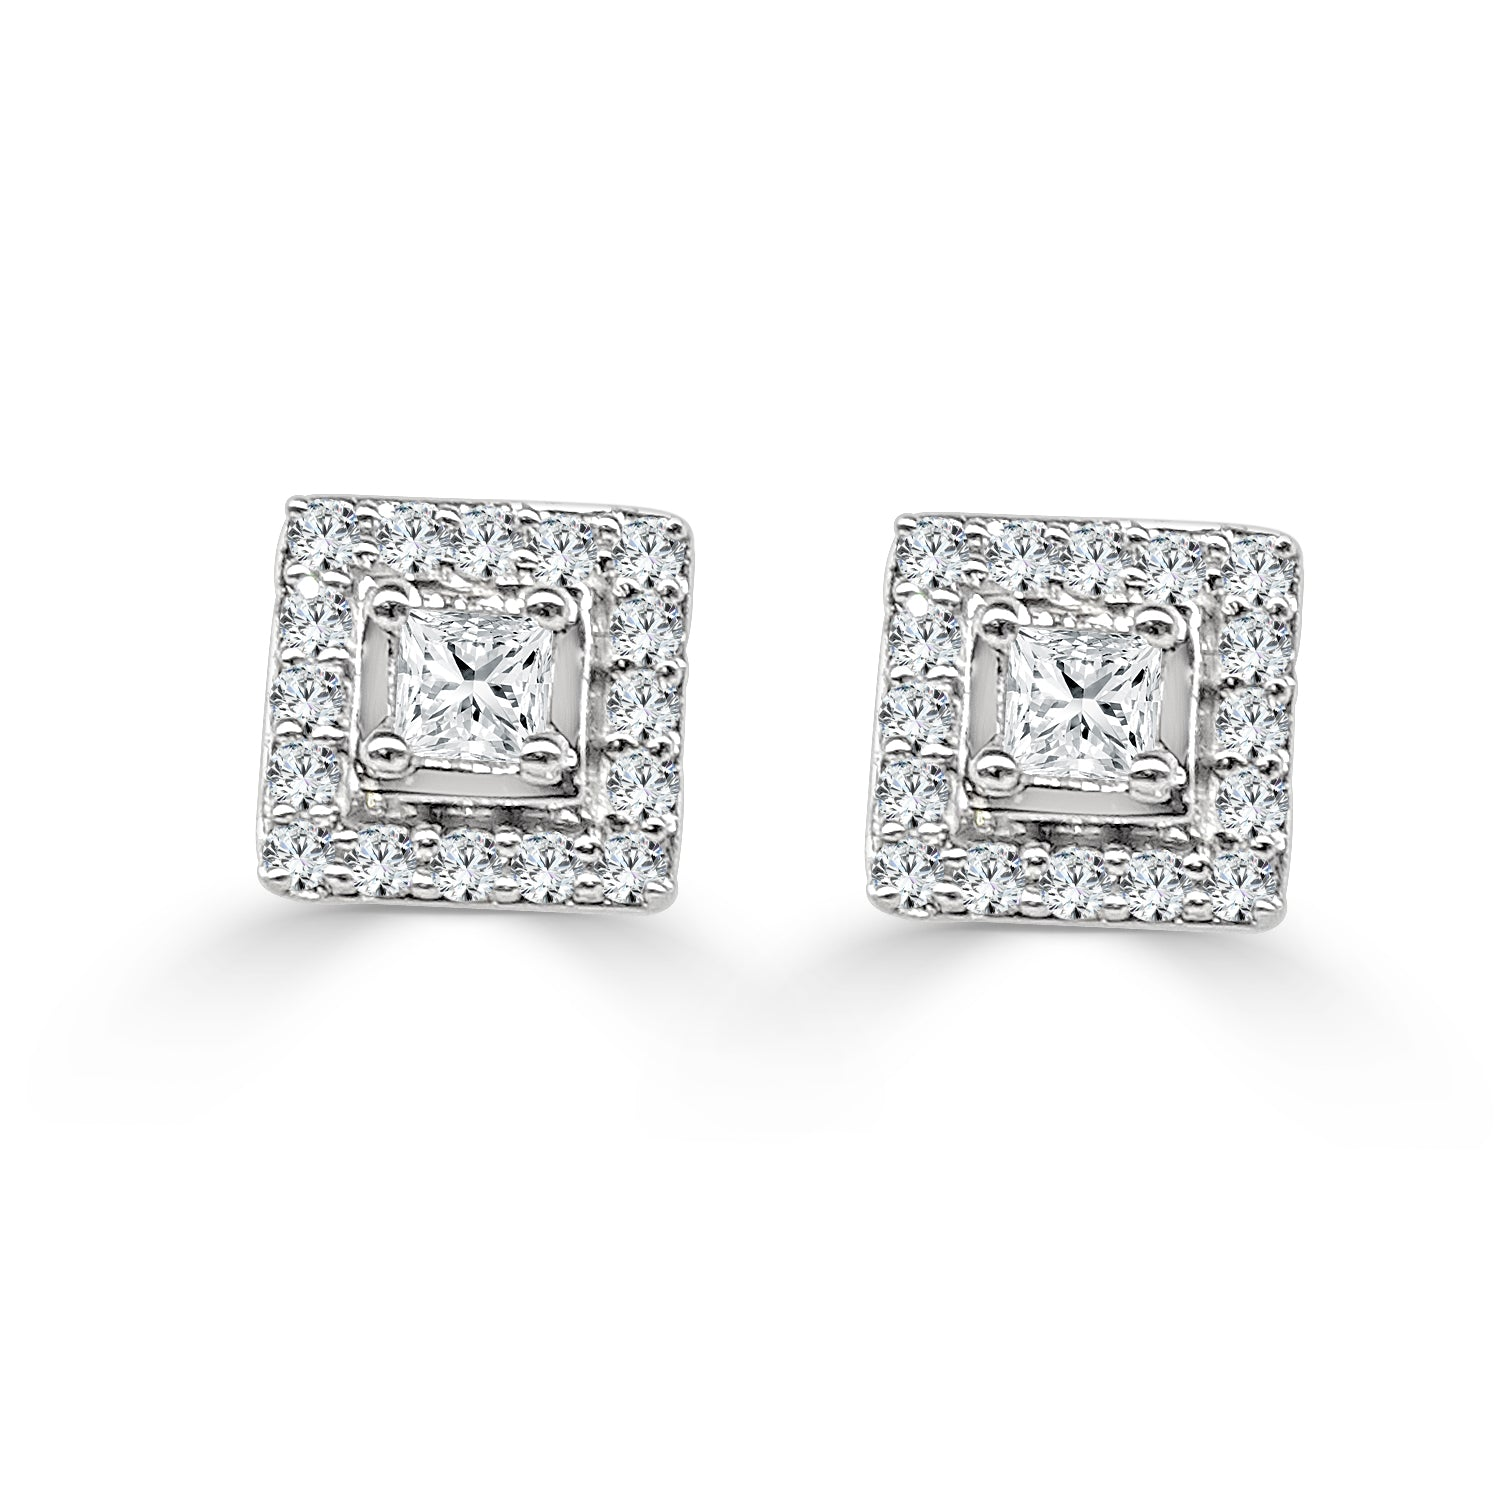 screw ct company stud of ctw giacobbe diamond gold single copy earrings cut platinum back h products g princess white